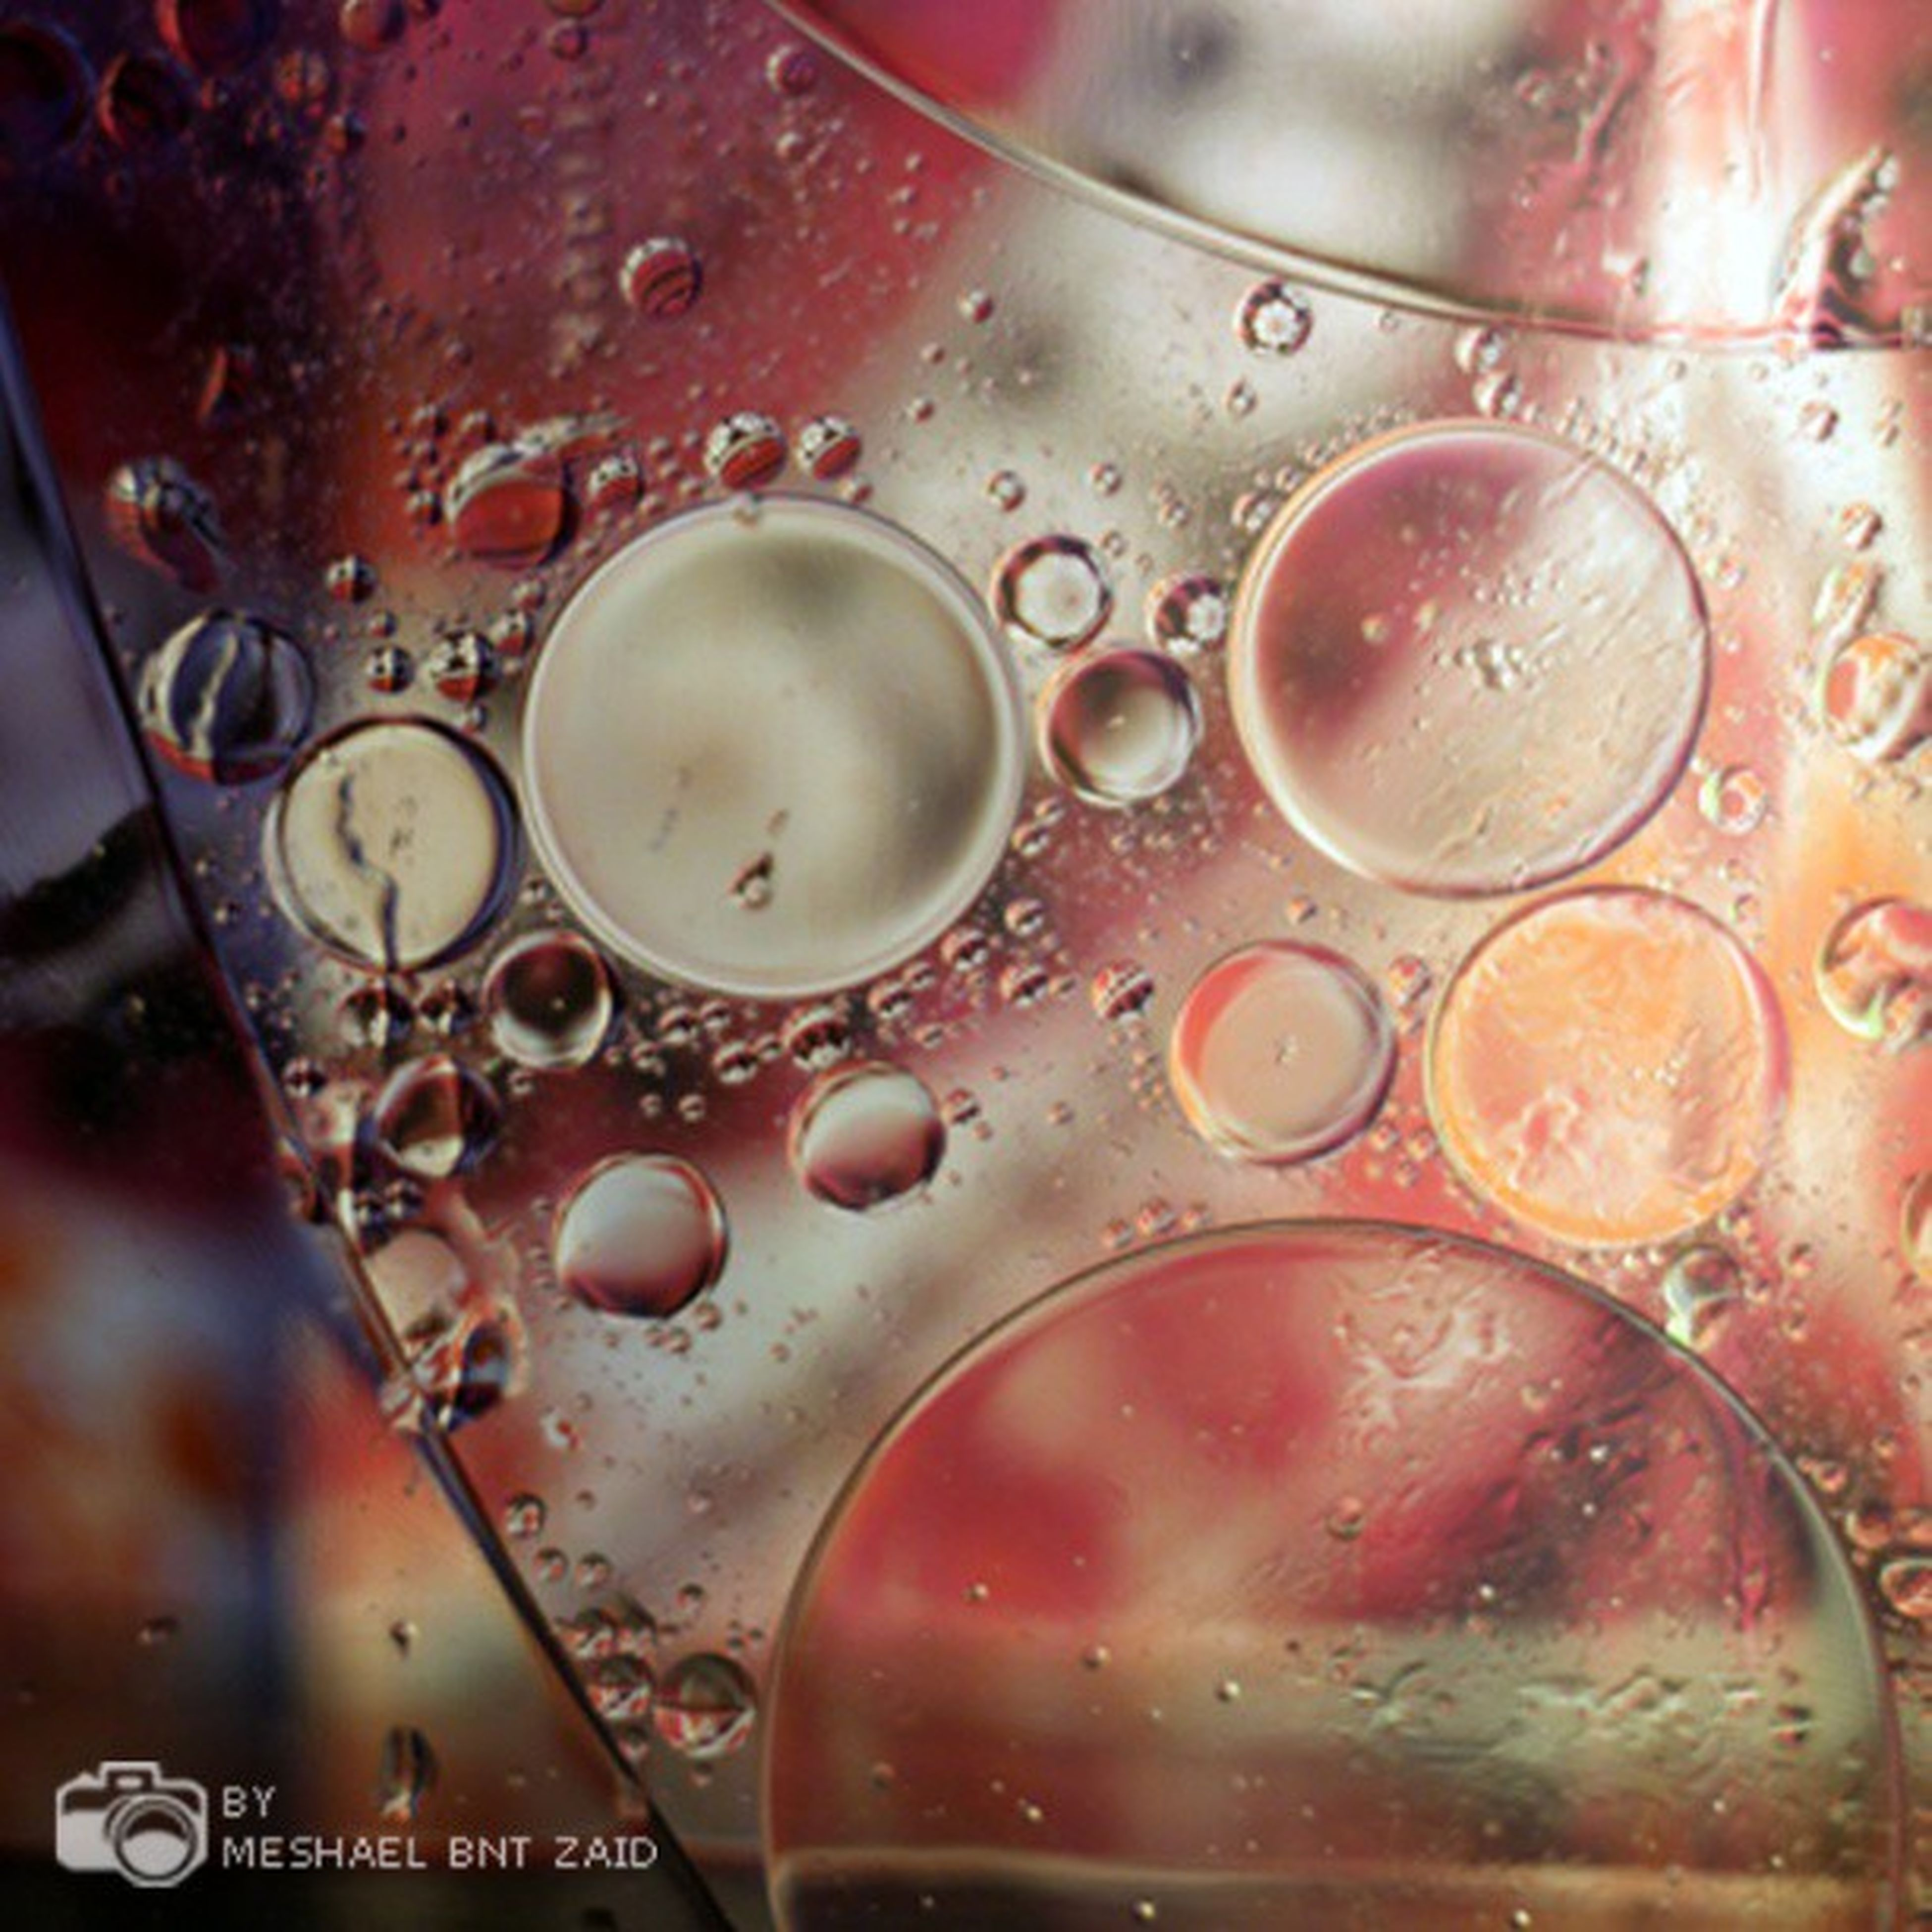 indoors, close-up, food and drink, still life, glass - material, high angle view, part of, metal, no people, freshness, technology, table, drink, focus on foreground, wet, circle, reflection, red, transparent, communication